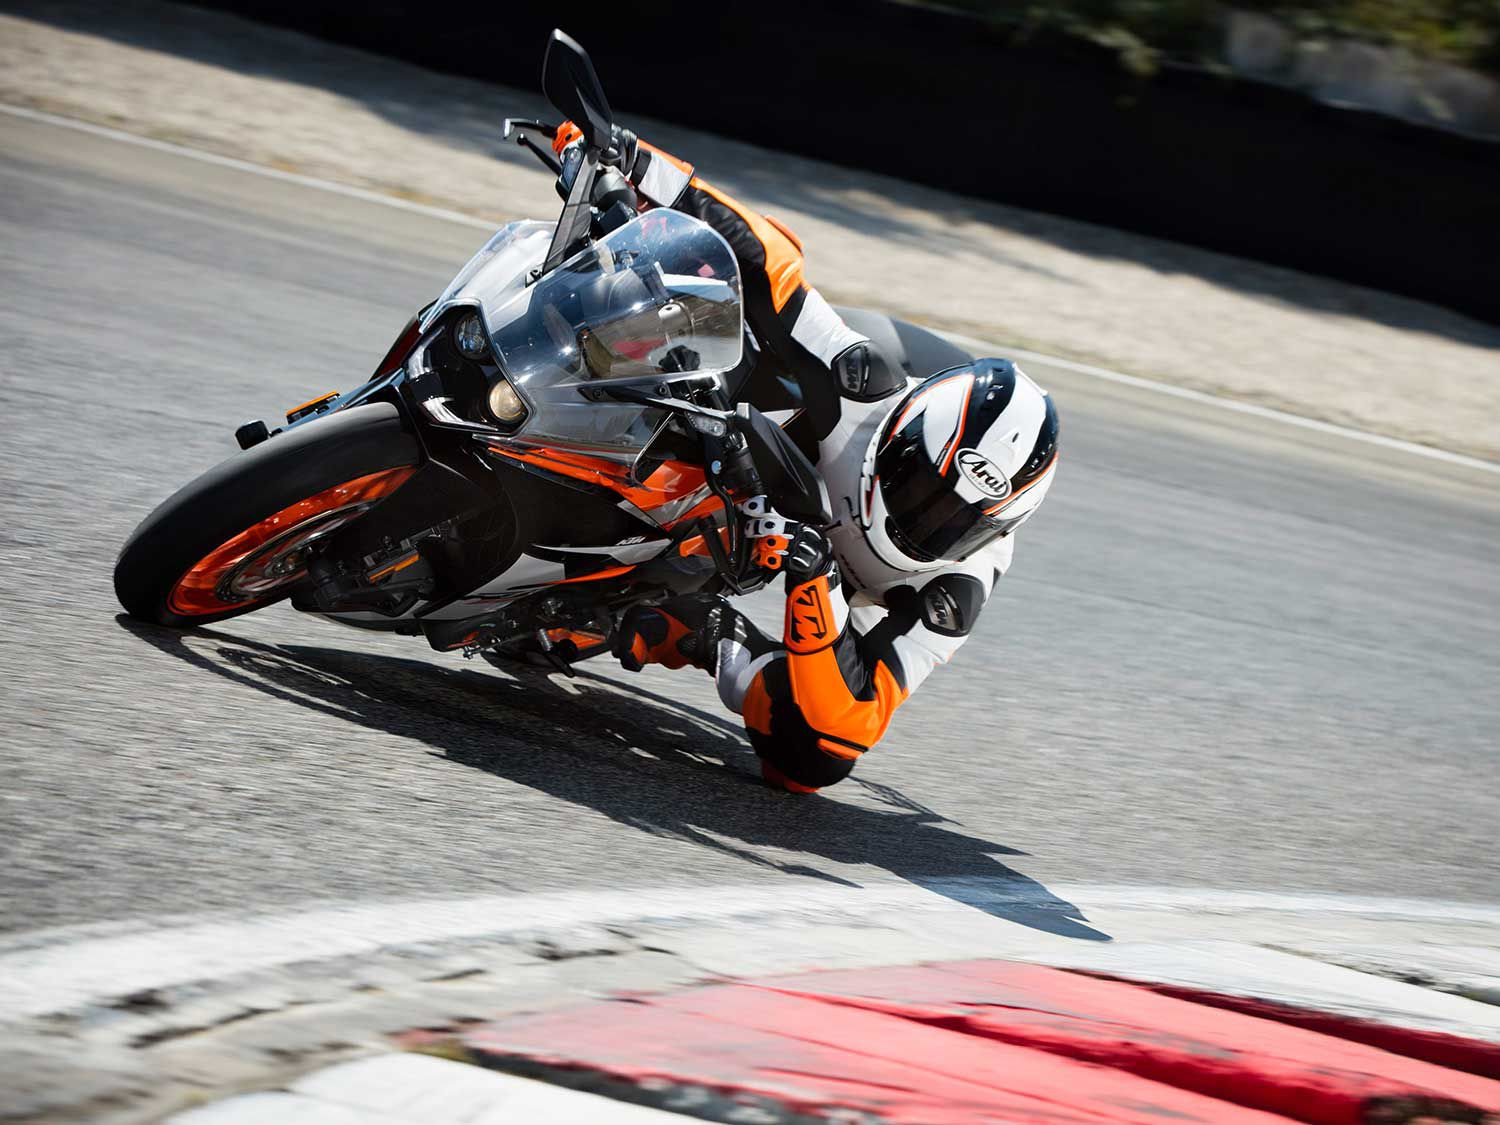 You won't be riding like this initially, but if you want to get there starting on a sport-styled starter bike, the KTM RC 390 is a good choice.